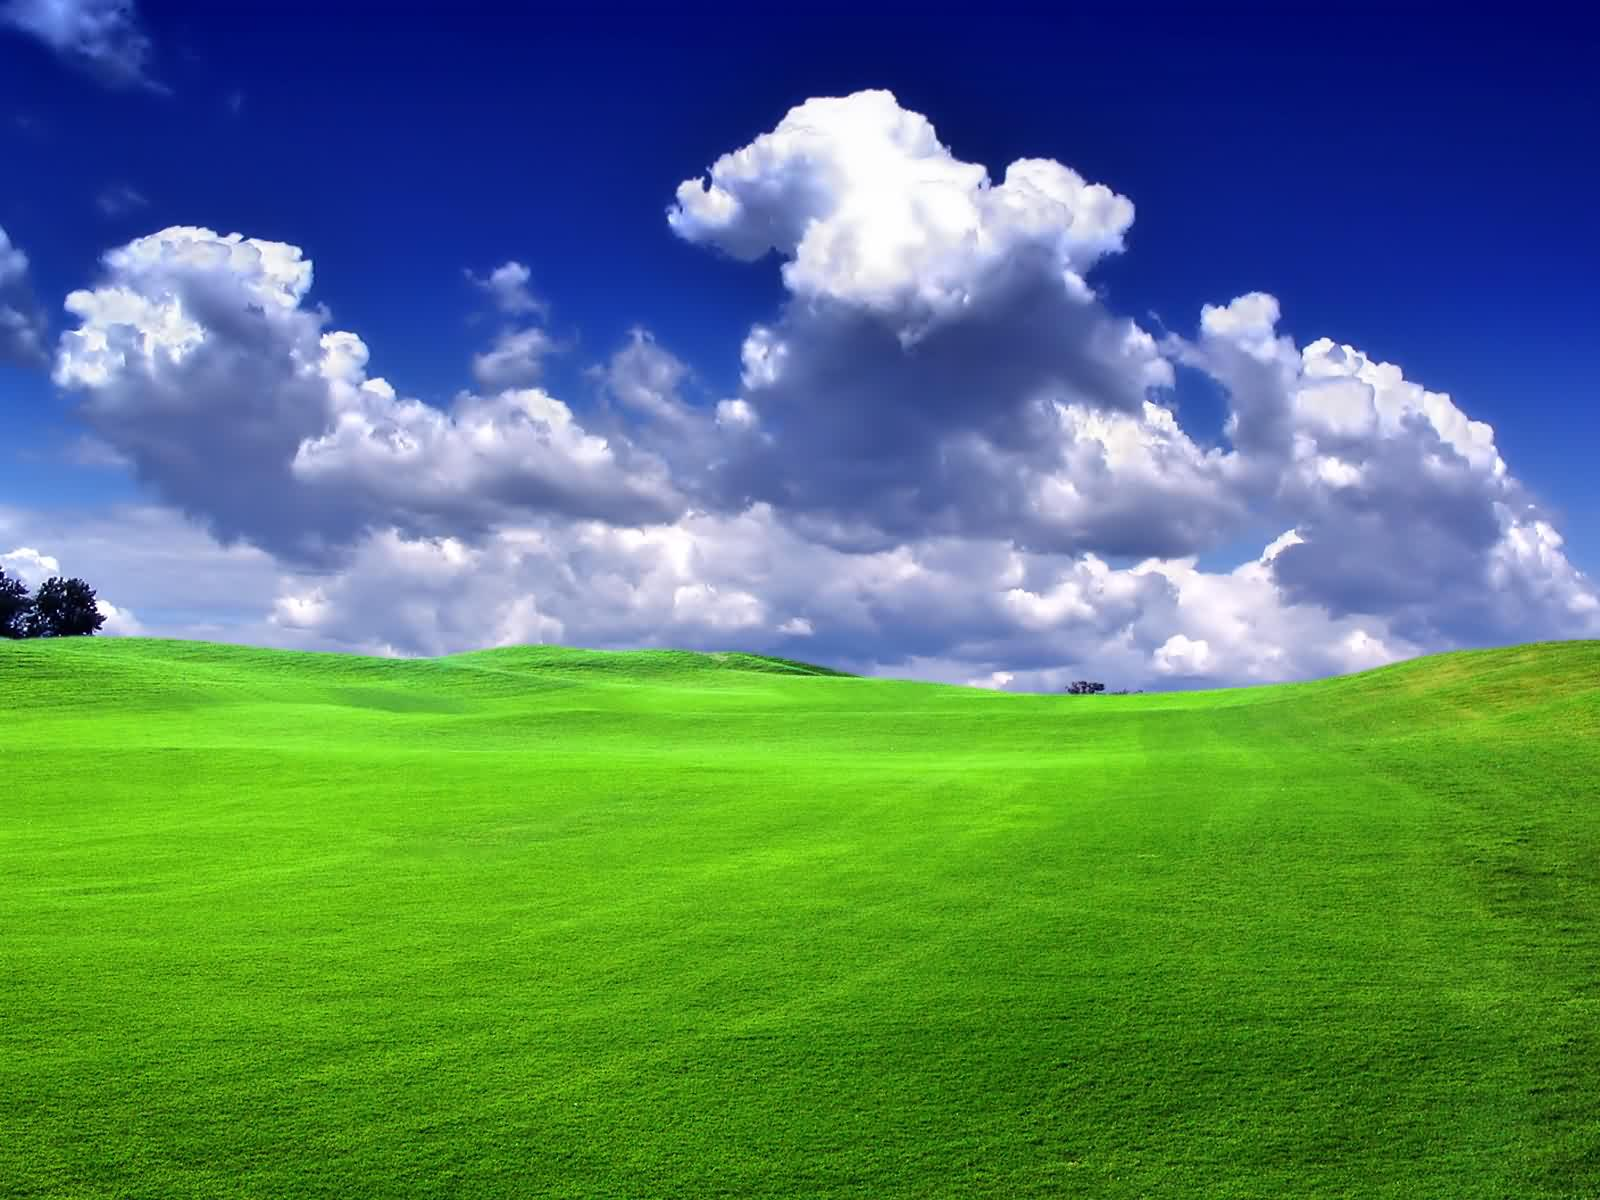 HD Wallpapers Of Windows XP